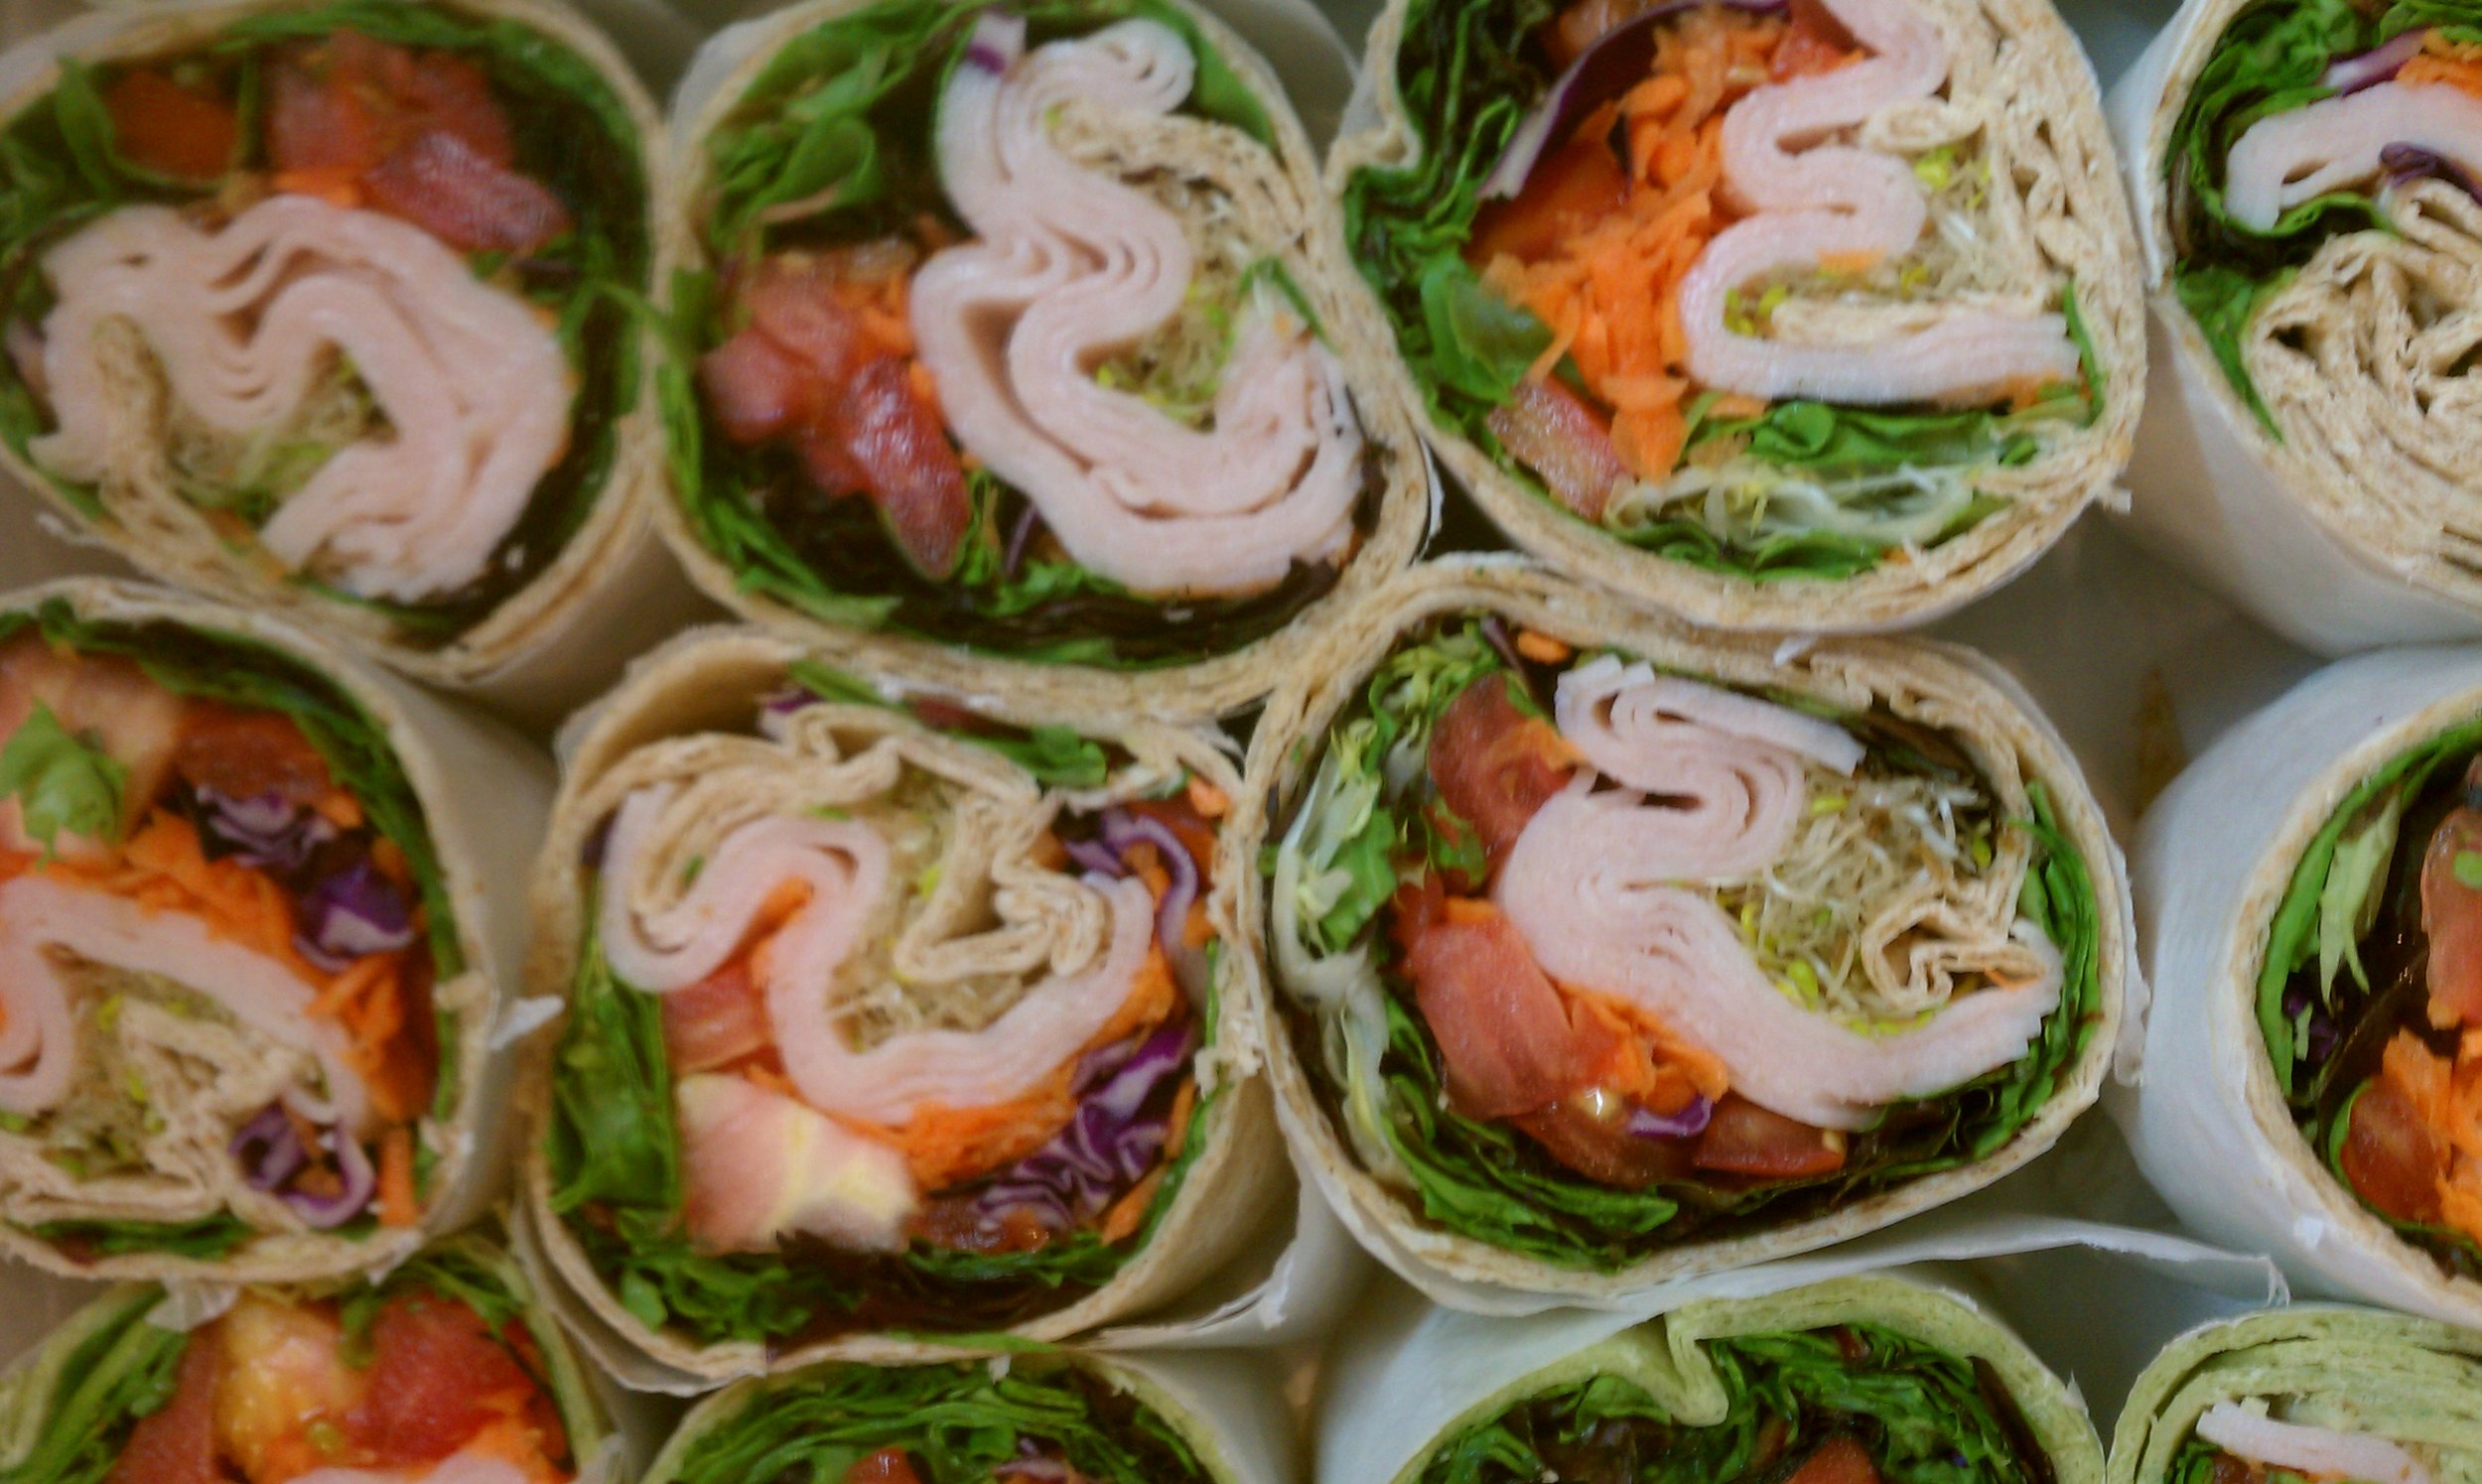 Breast Turkey Wrap Platter 1.jpg